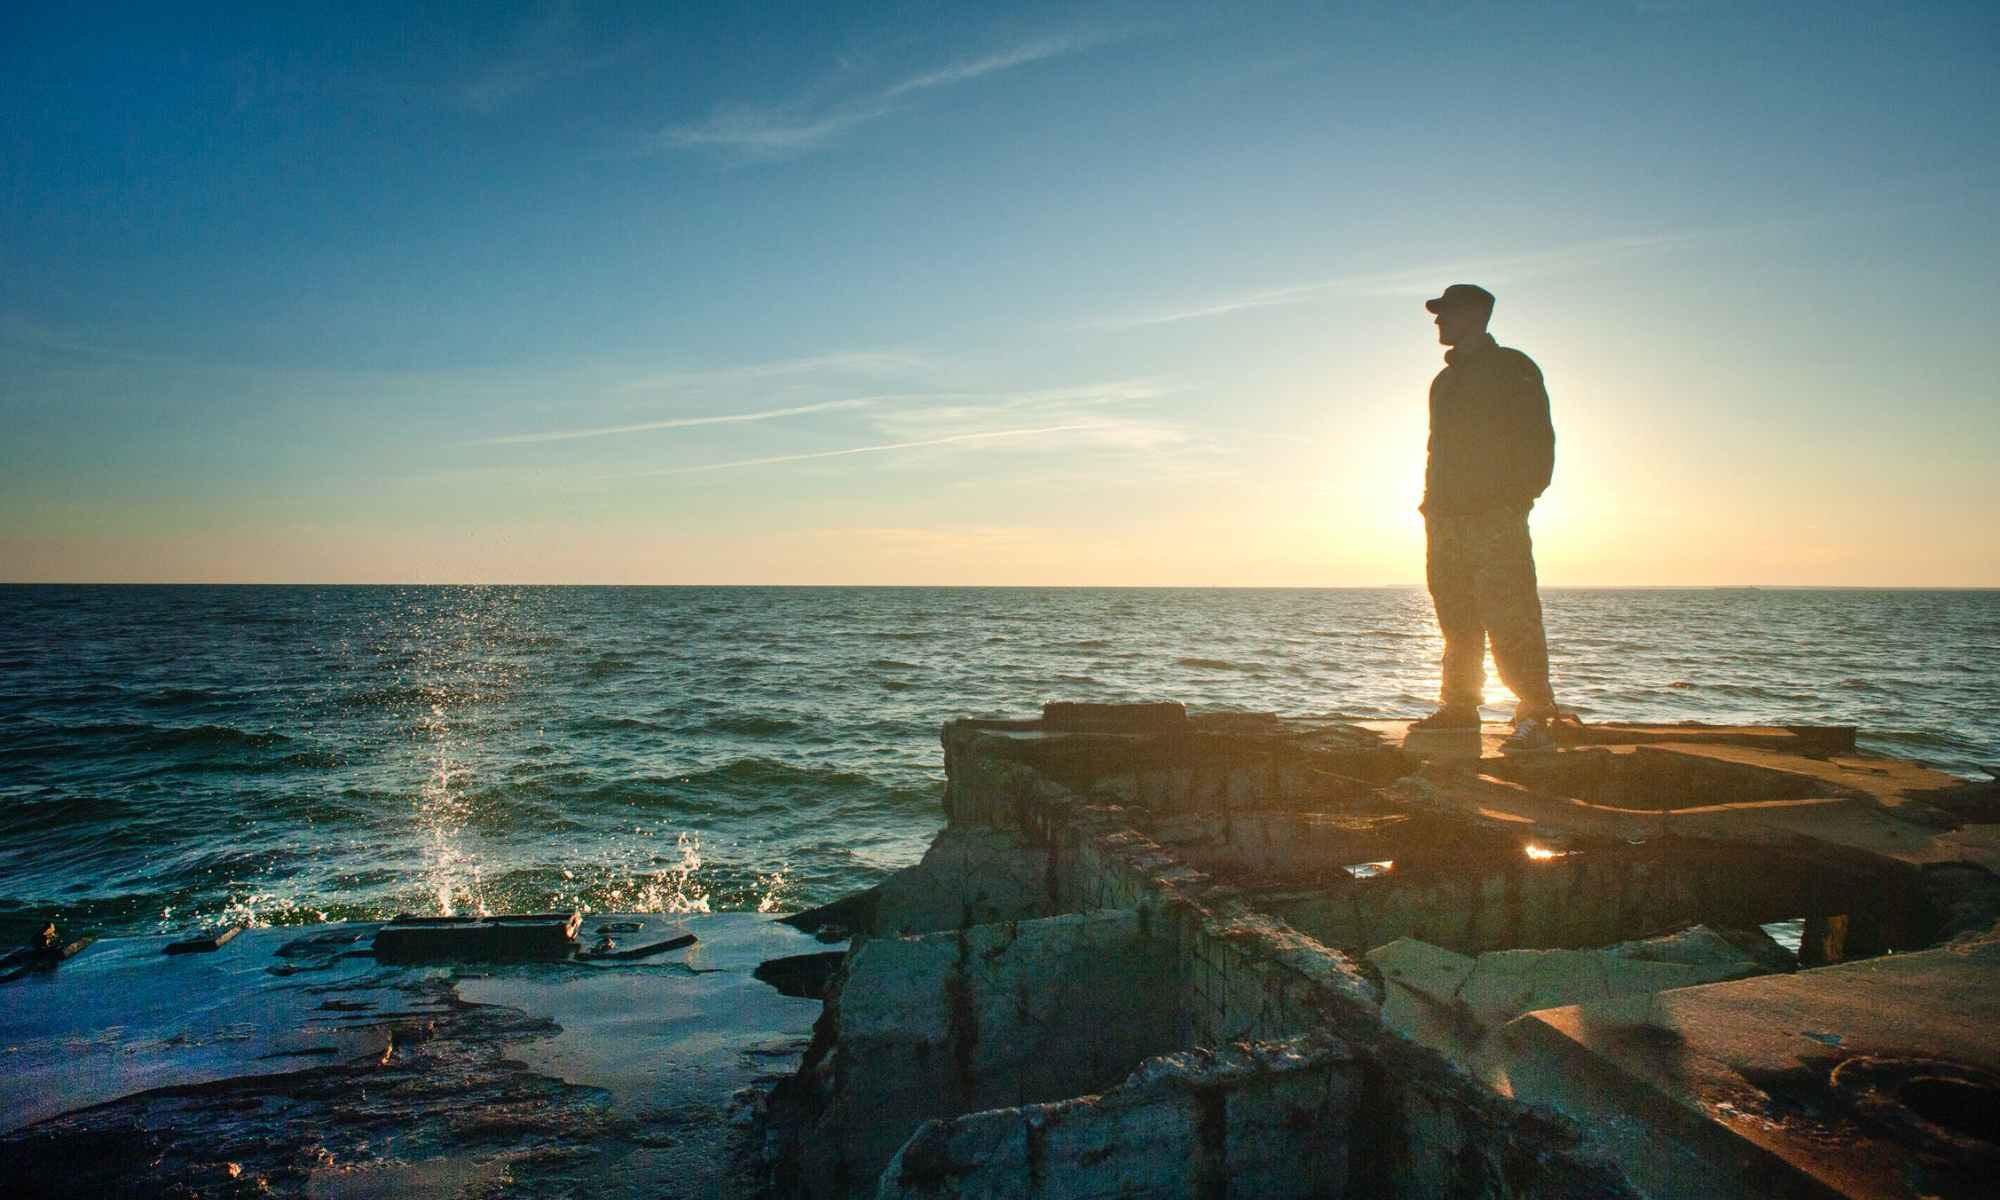 Silhouette photo of man standing on concrete pavement overlooking ocean